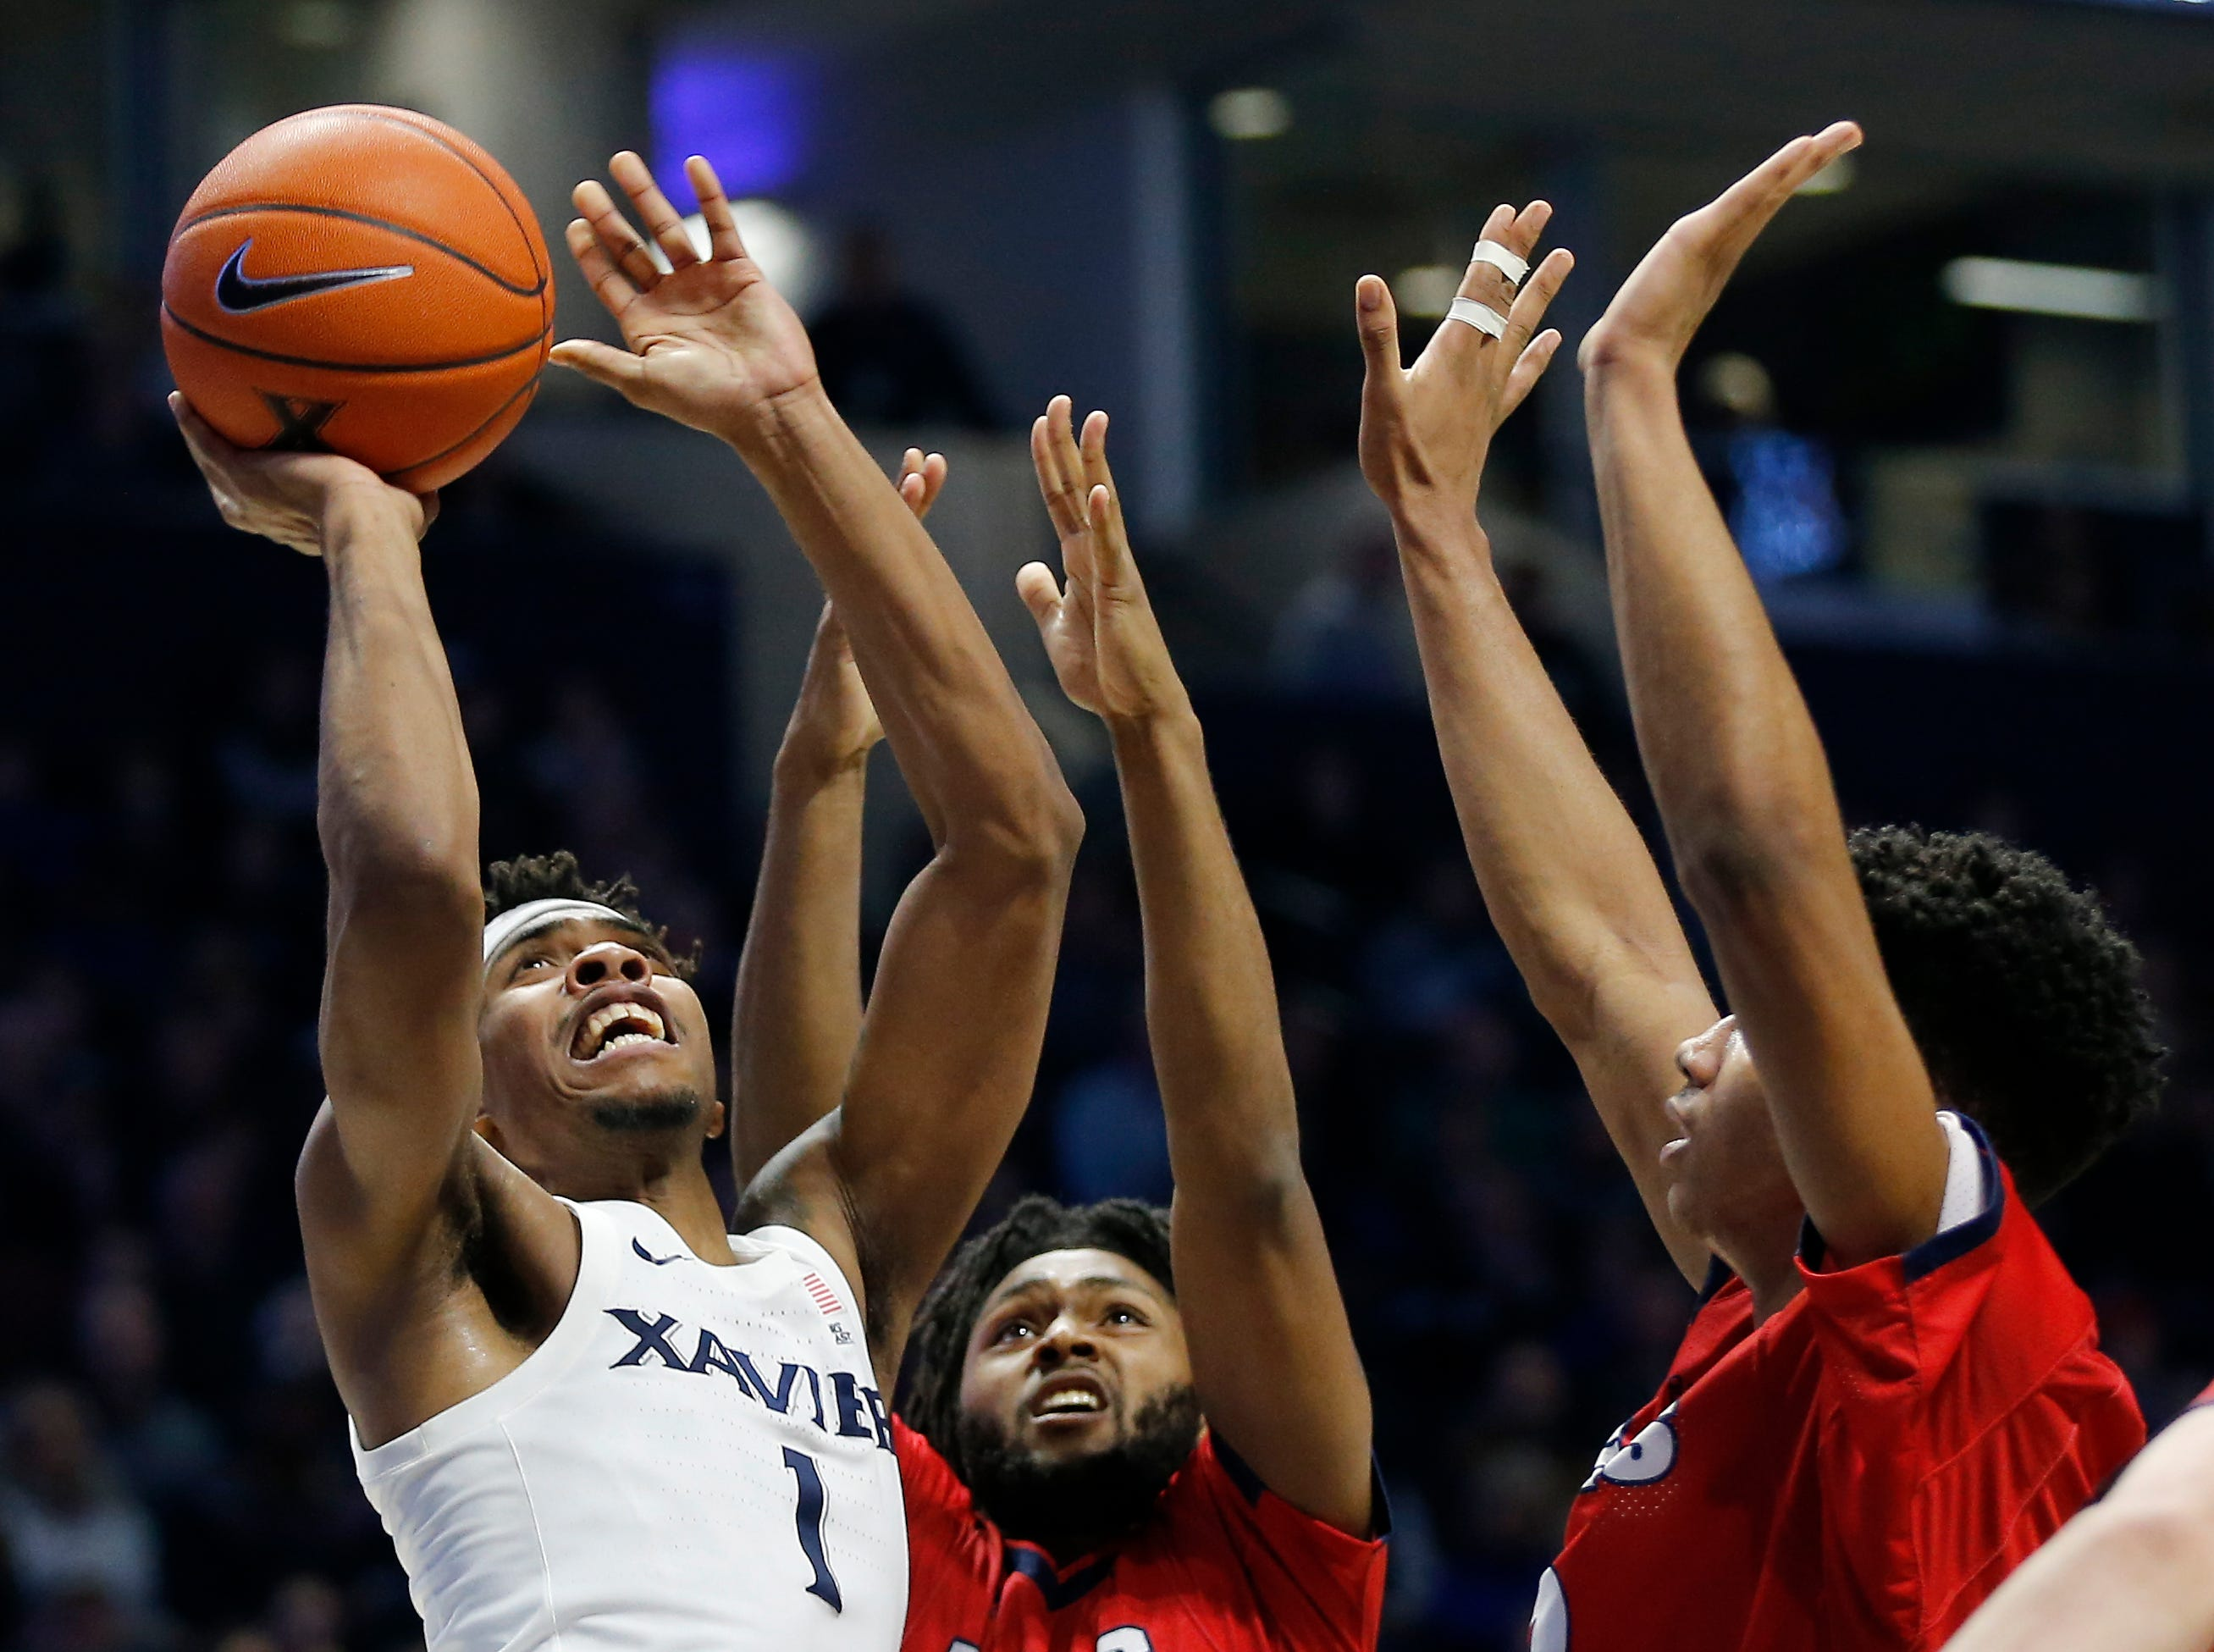 Xavier Musketeers guard Paul Scruggs fights to put up a shot under the basket in the second half.